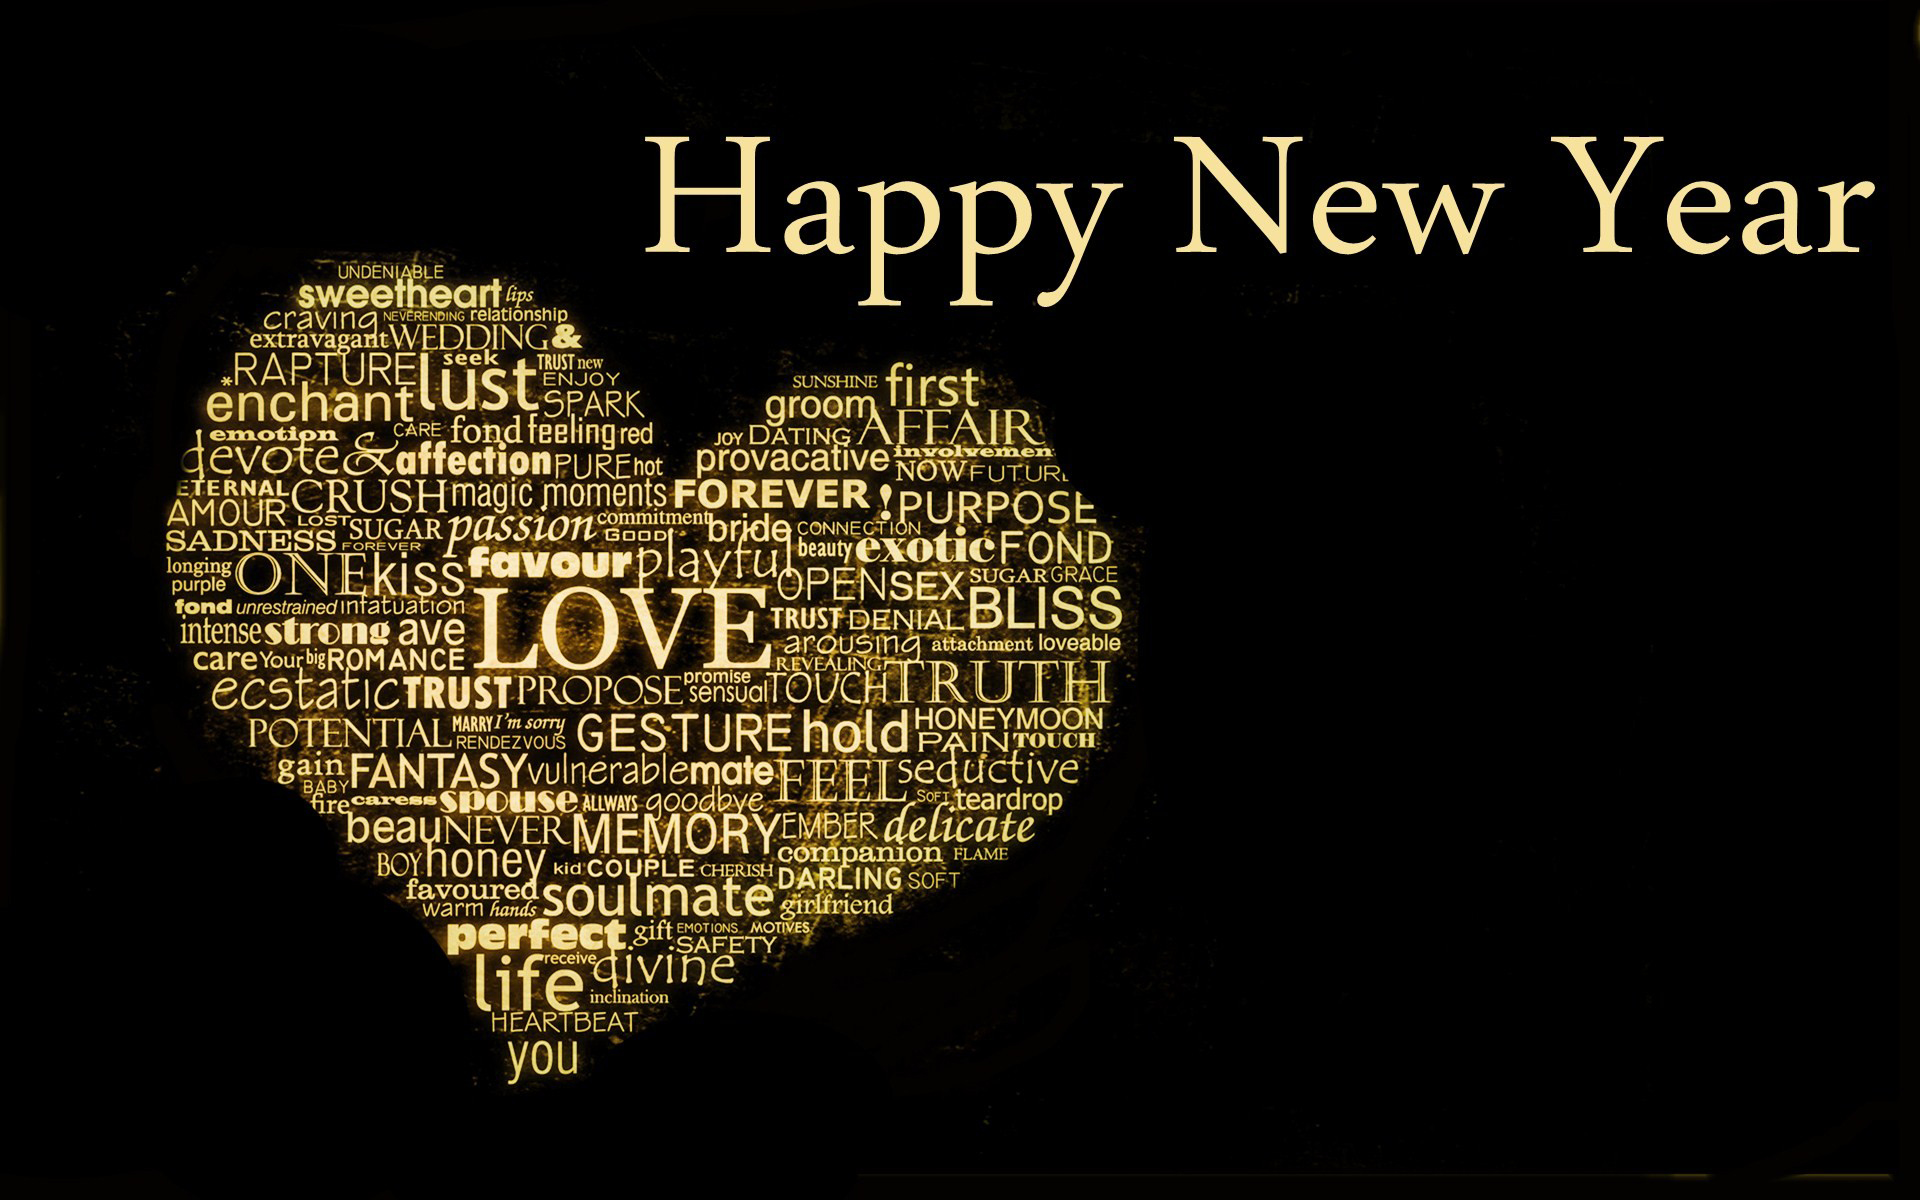 Happy New Year 2019 Images New Year Pictures 2019 Photos Download